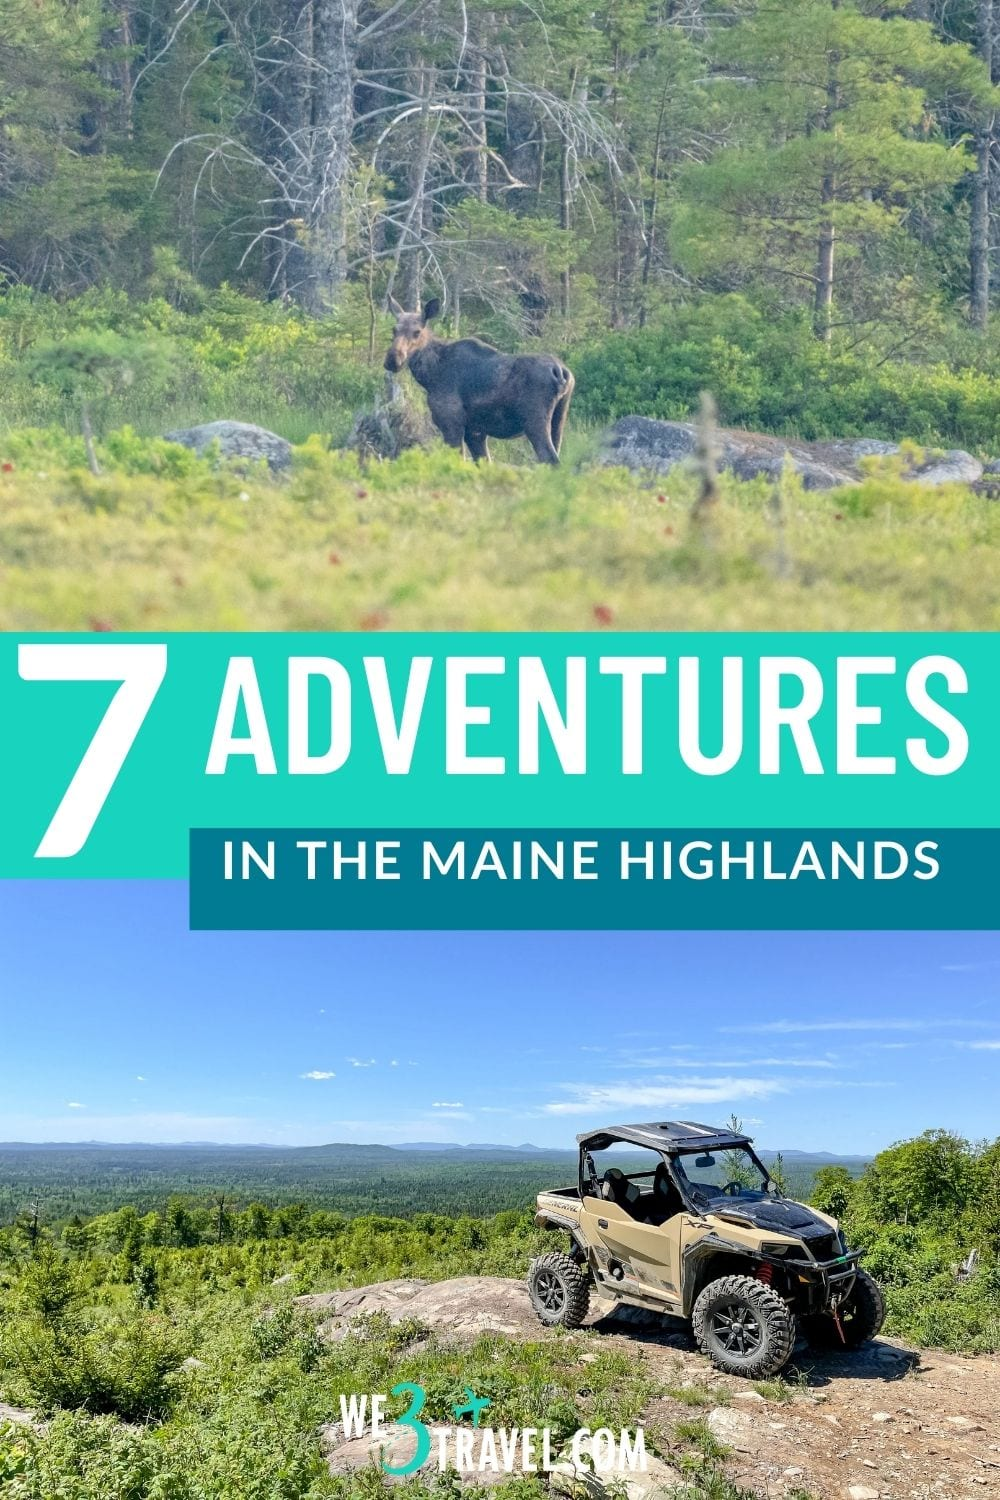 7 Adventures in the Maine Highlands